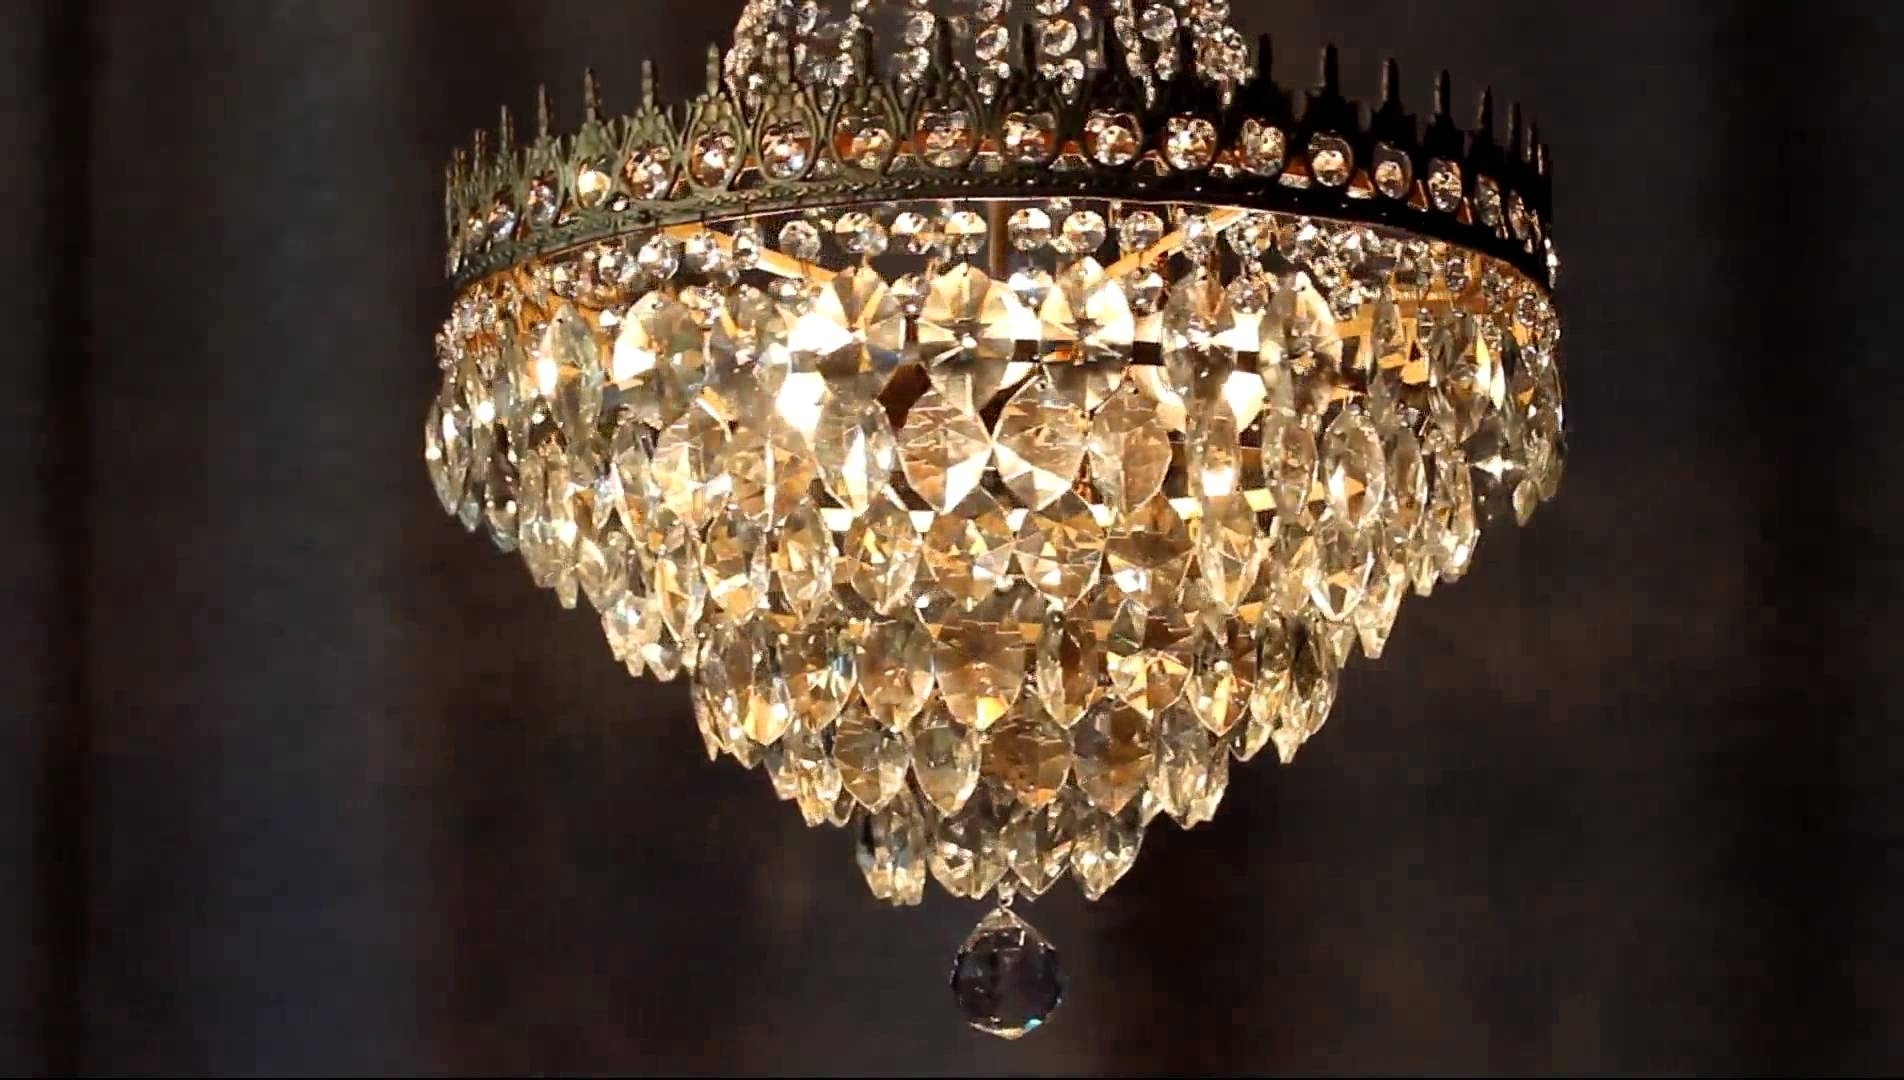 Huge Antique Luster Crystal Candelabra Chandelier Lighting Brass Old Throughout Well Liked Huge Chandeliers (View 3 of 20)